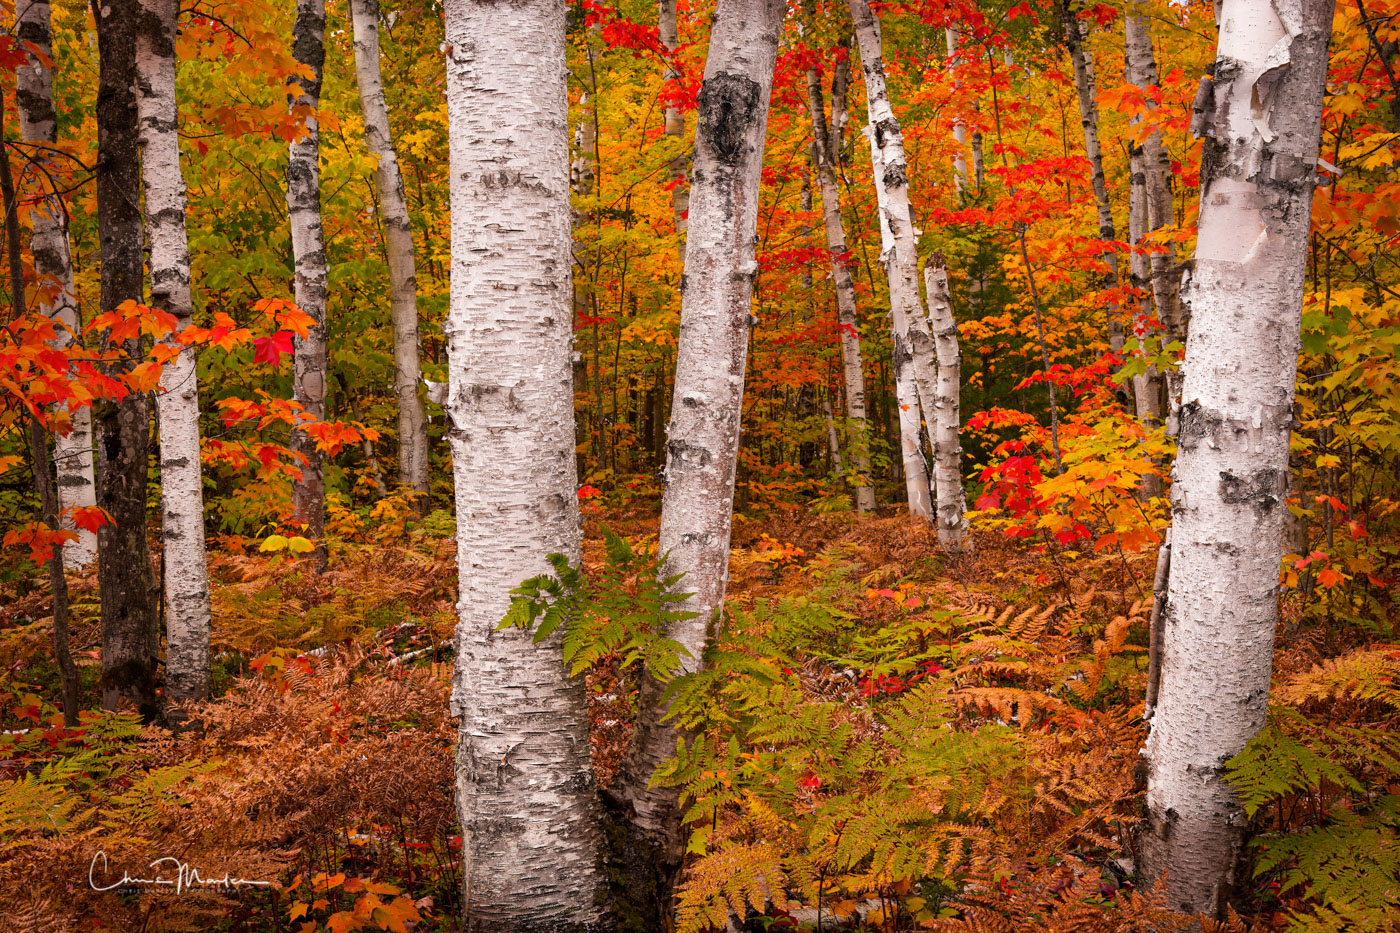 Michigan's White Birch Forest is located within the Pictured Rocks National Lakeshore of the Upper Peninsula.  The white-barked...